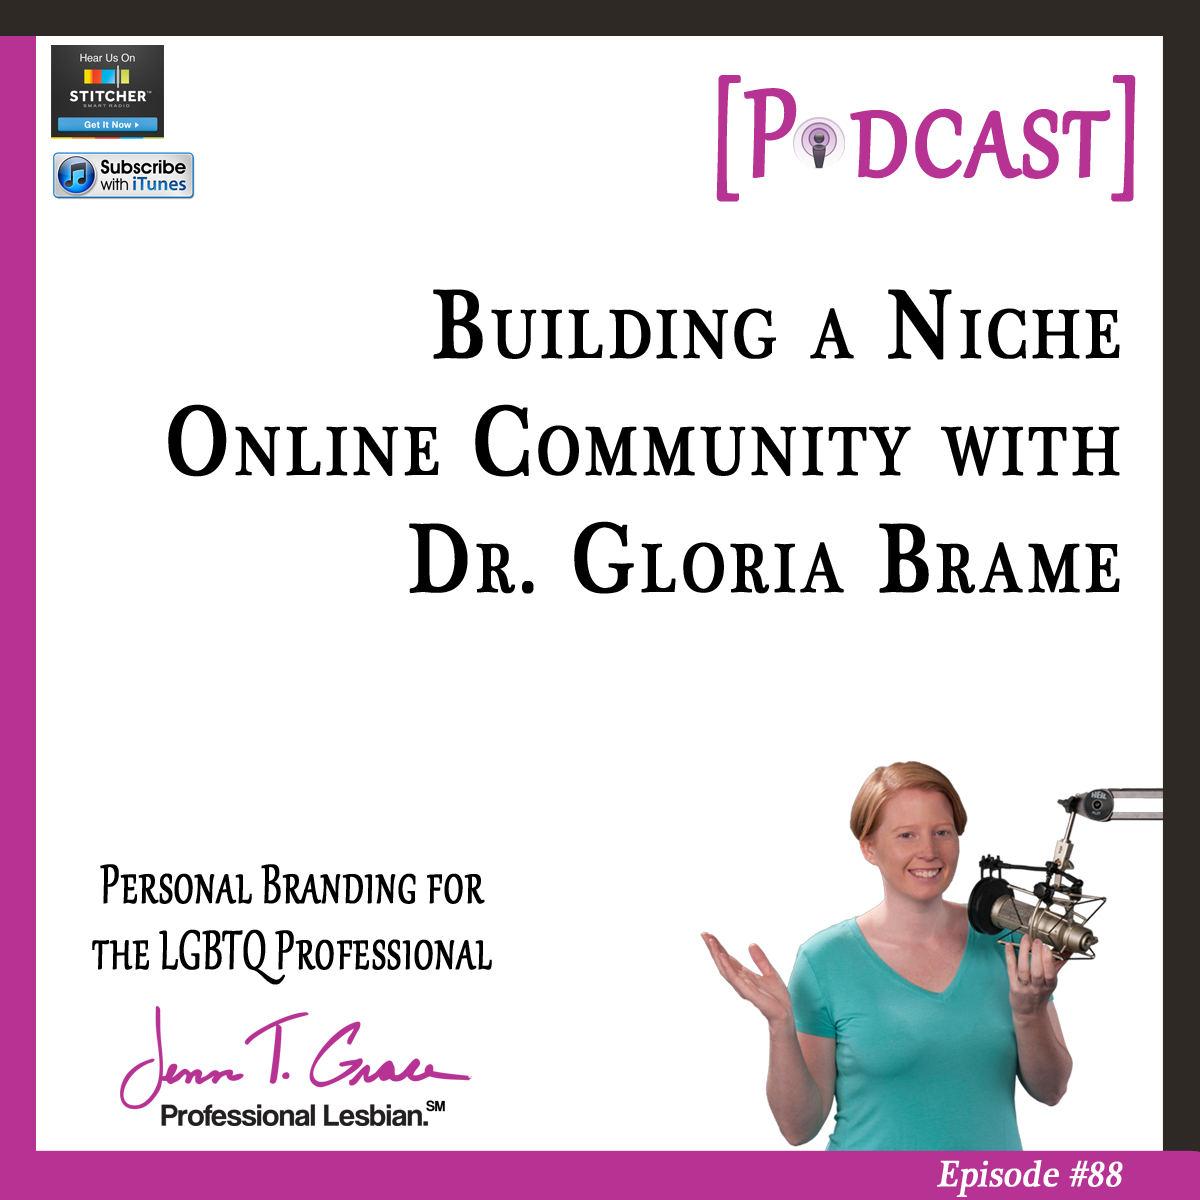 Personal Branding for the LGBTQ Professional - #88: Building a Niche Online Community with Dr. Gloria Brame